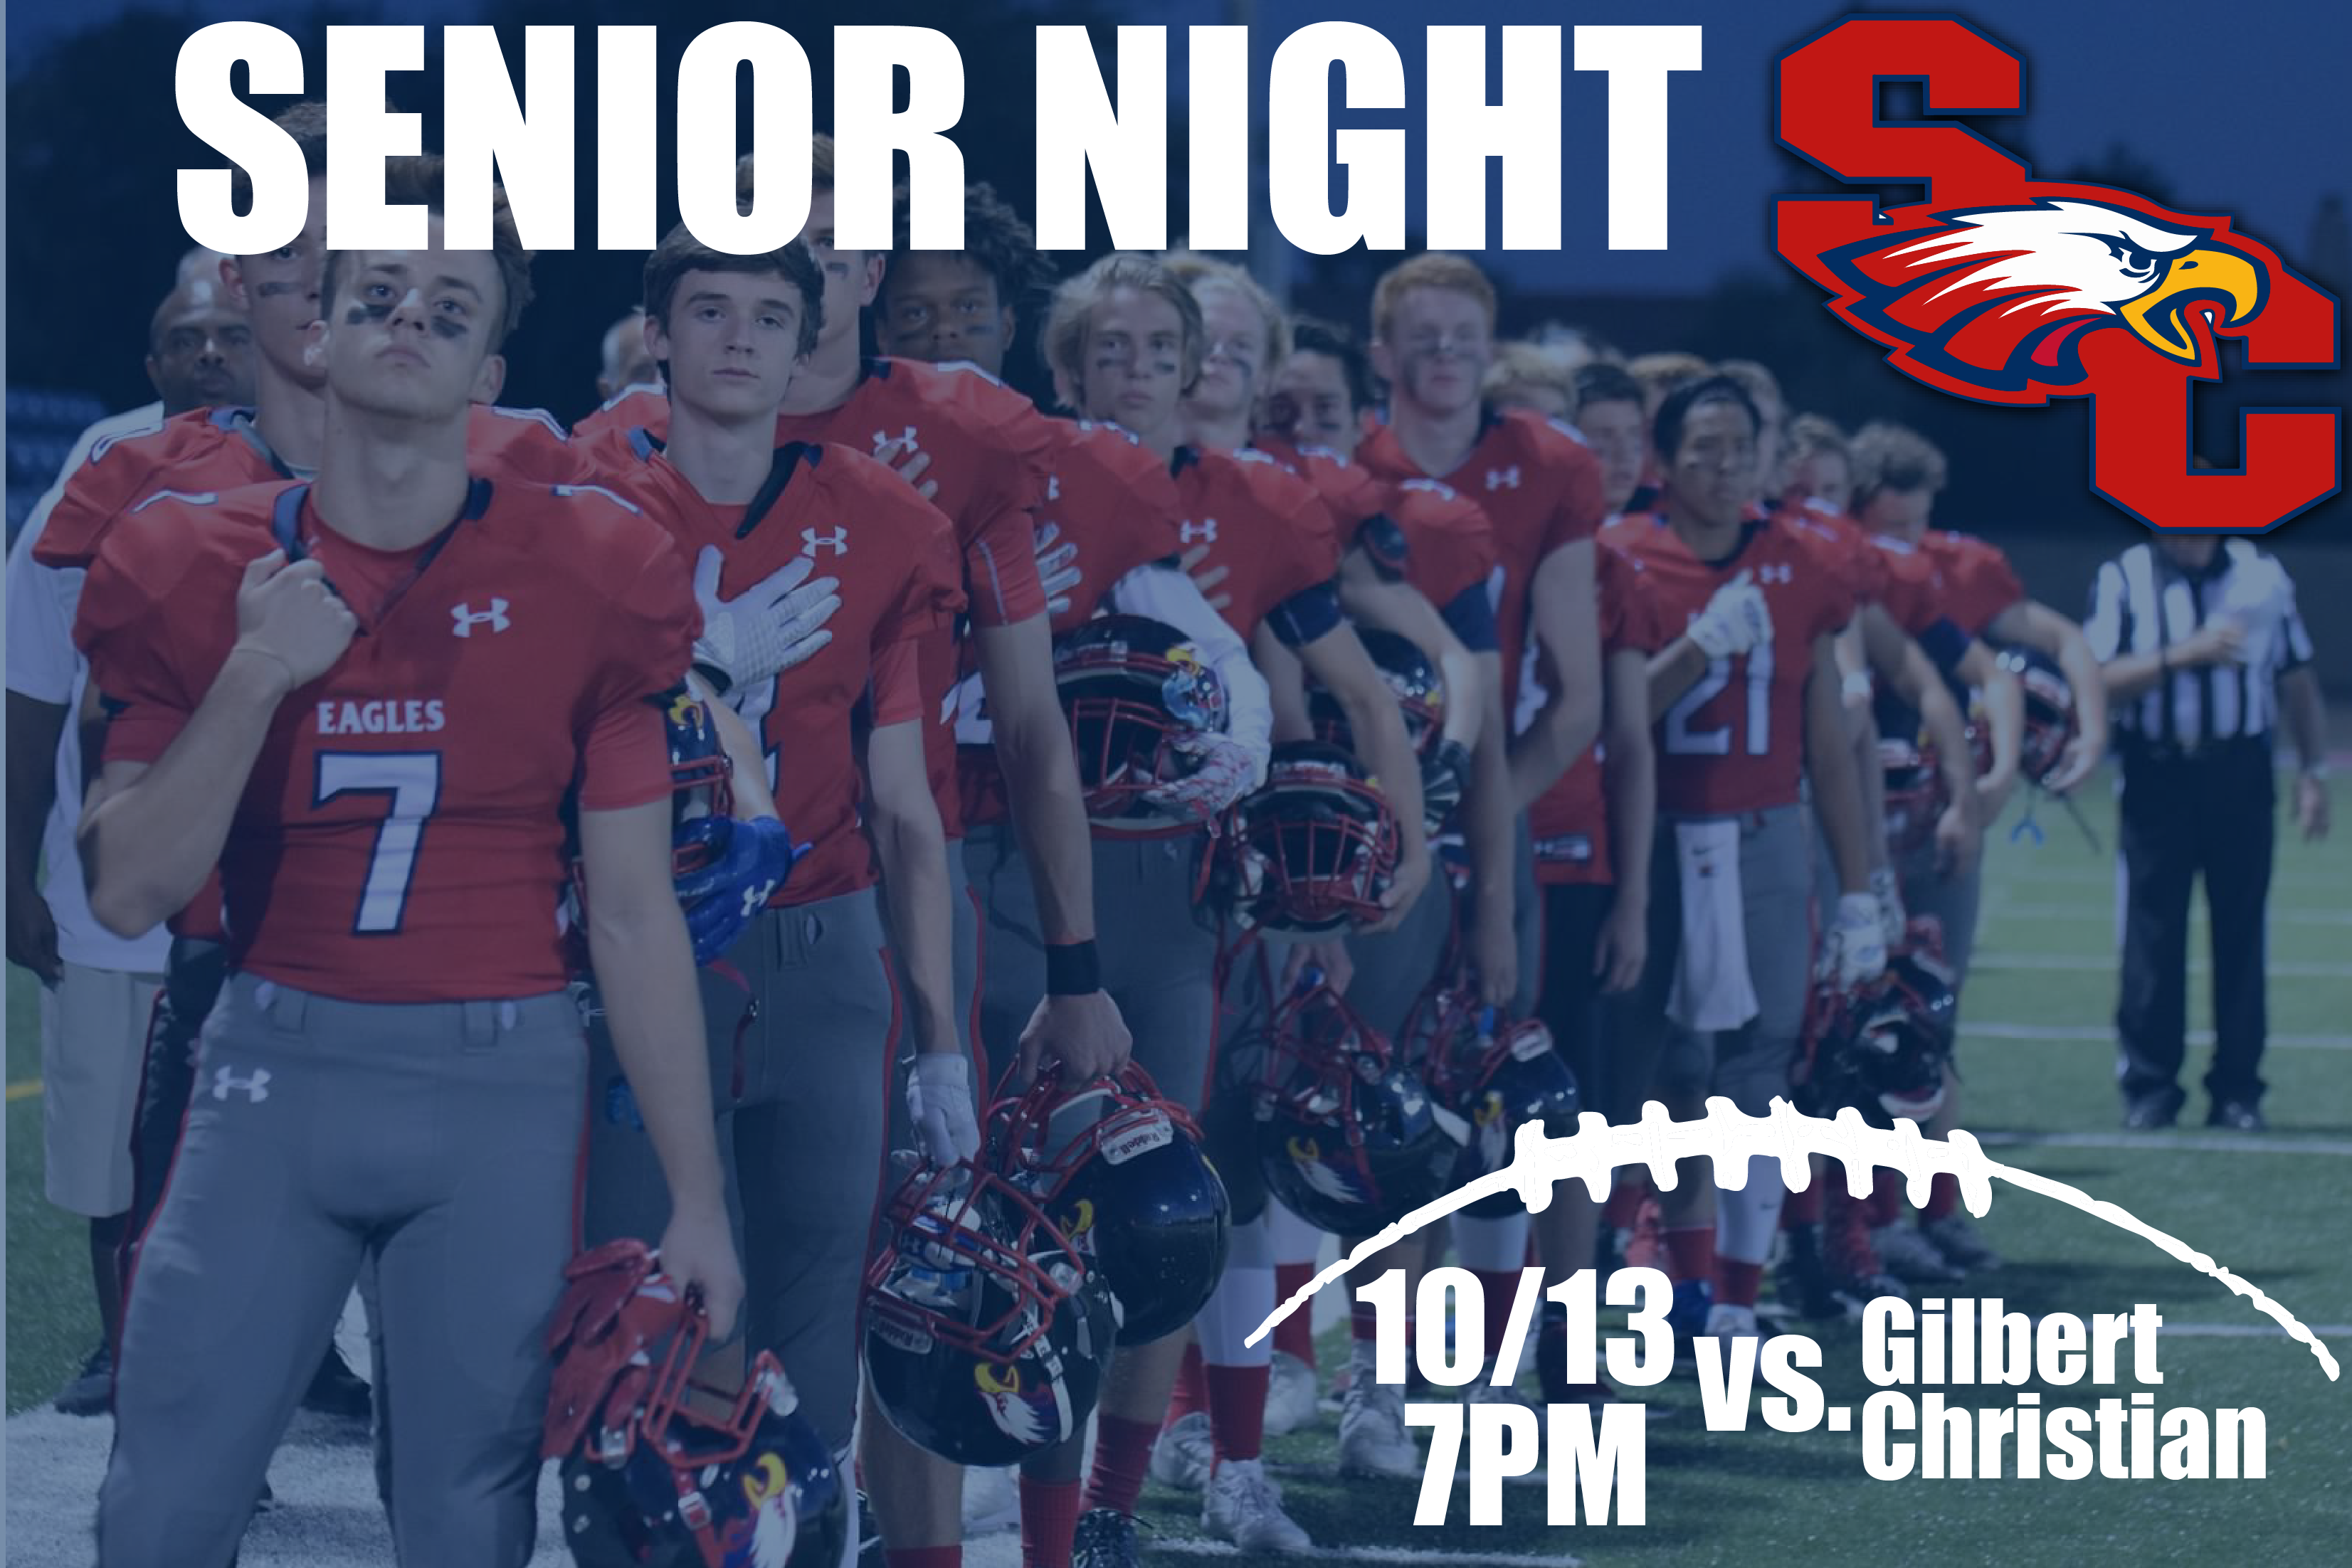 This Friday is Fall Athlete Senior Night!